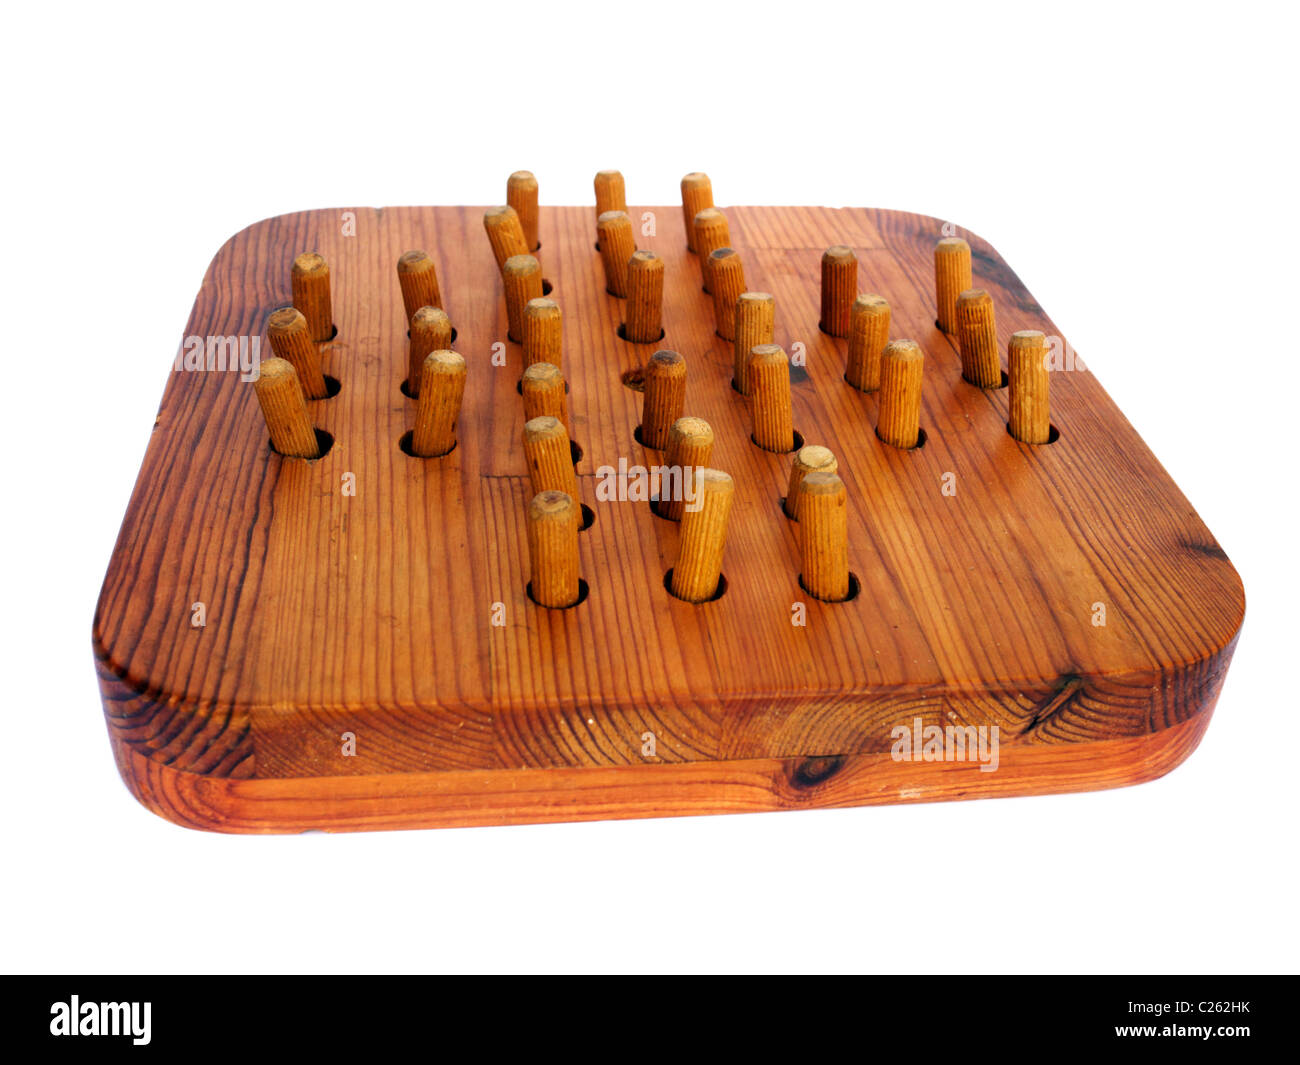 A Peg Solitaire board - Stock Image